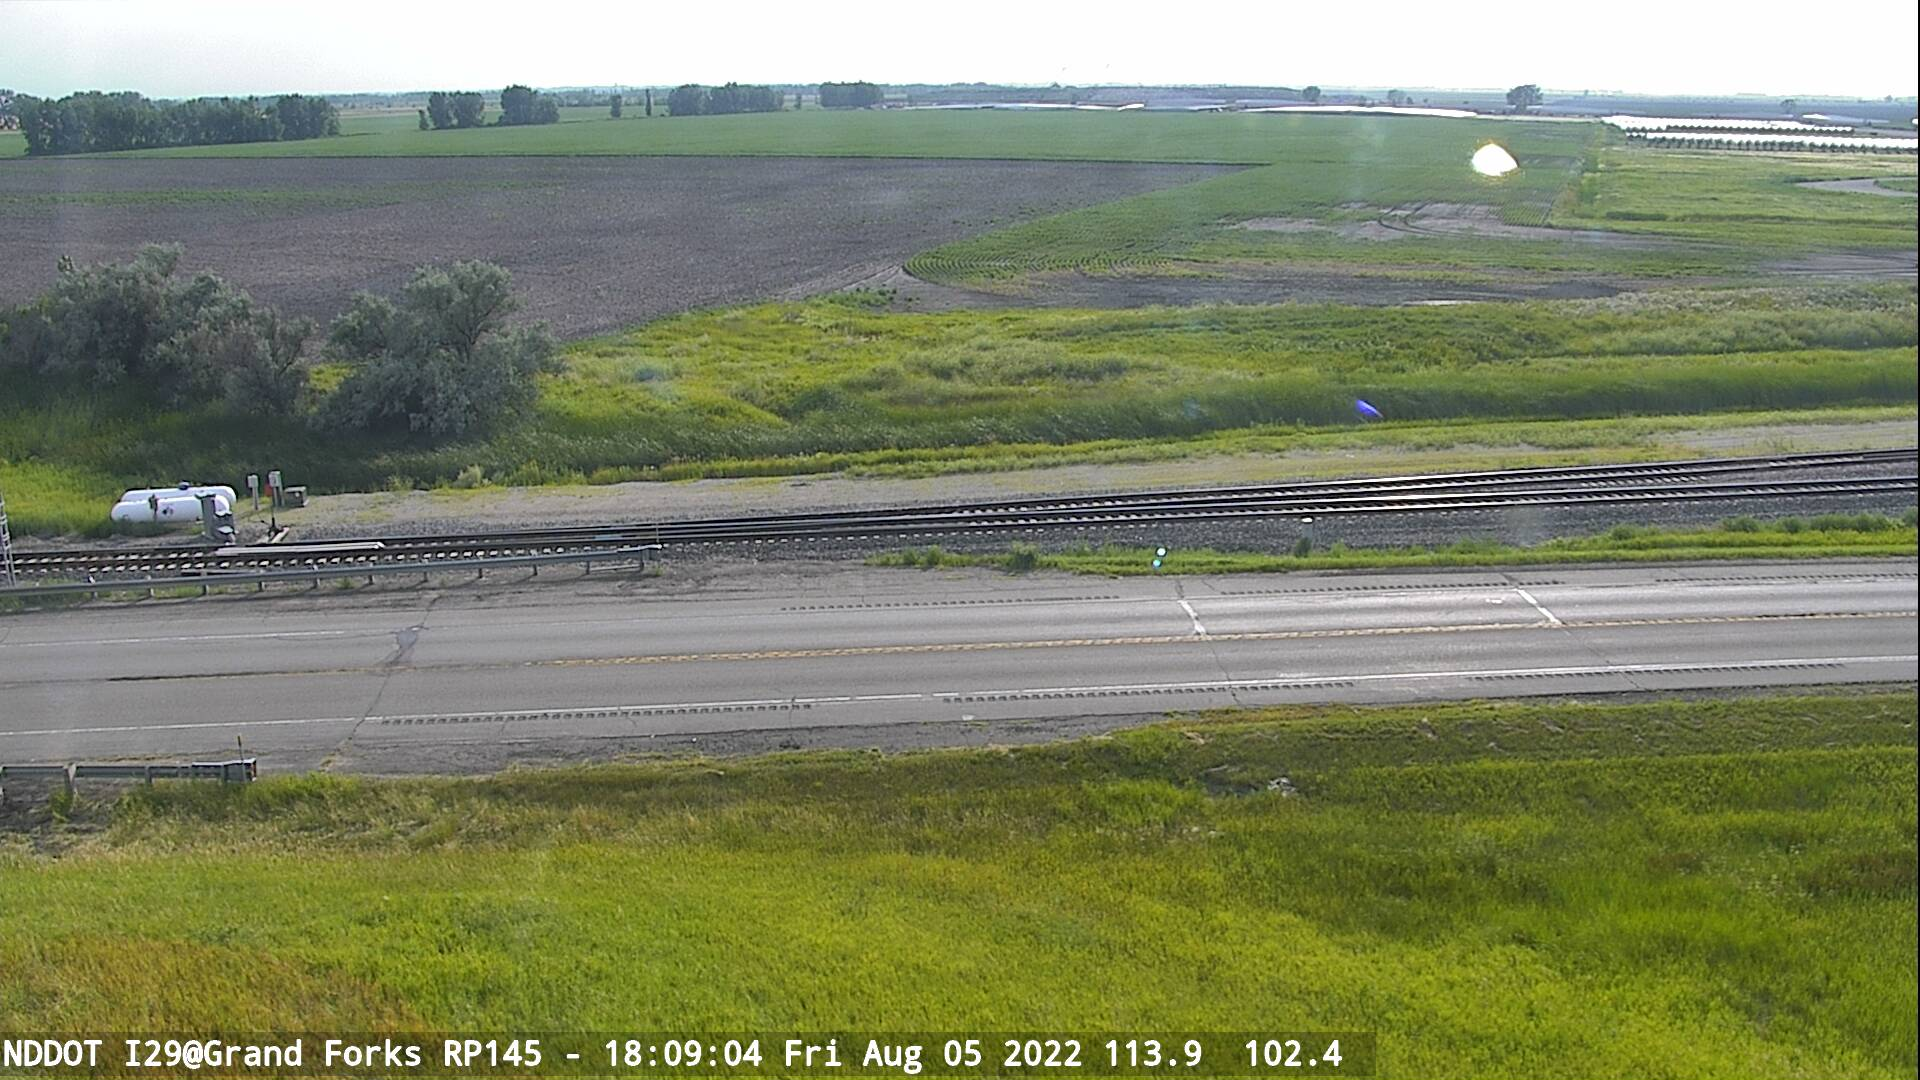 Grand Forks -  West (I 29 MP 145) - NDDOT